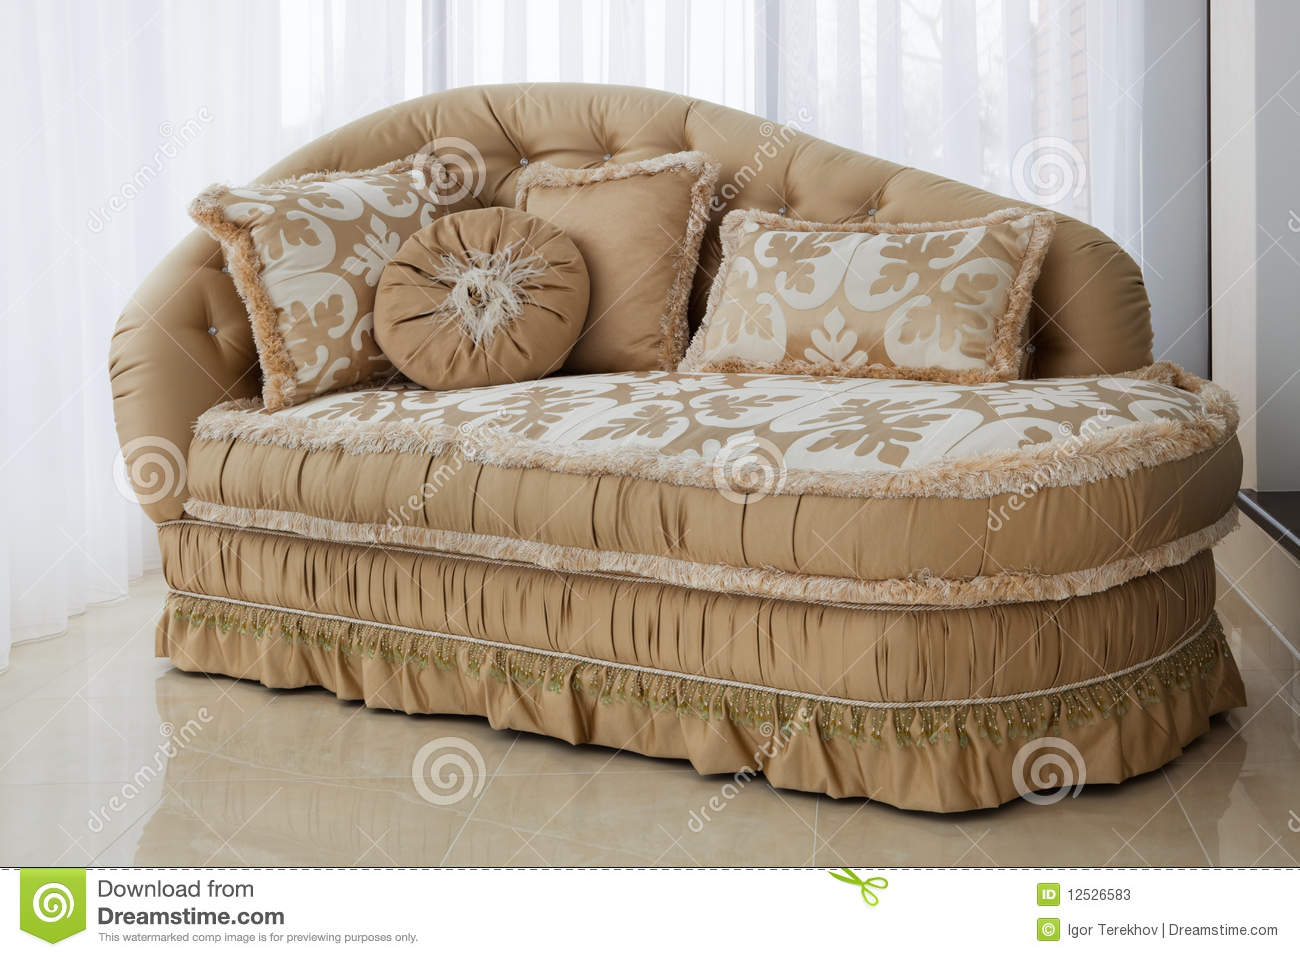 Beautiful sofa stock photos image 12526583 - Pics of beautiful sofa ...